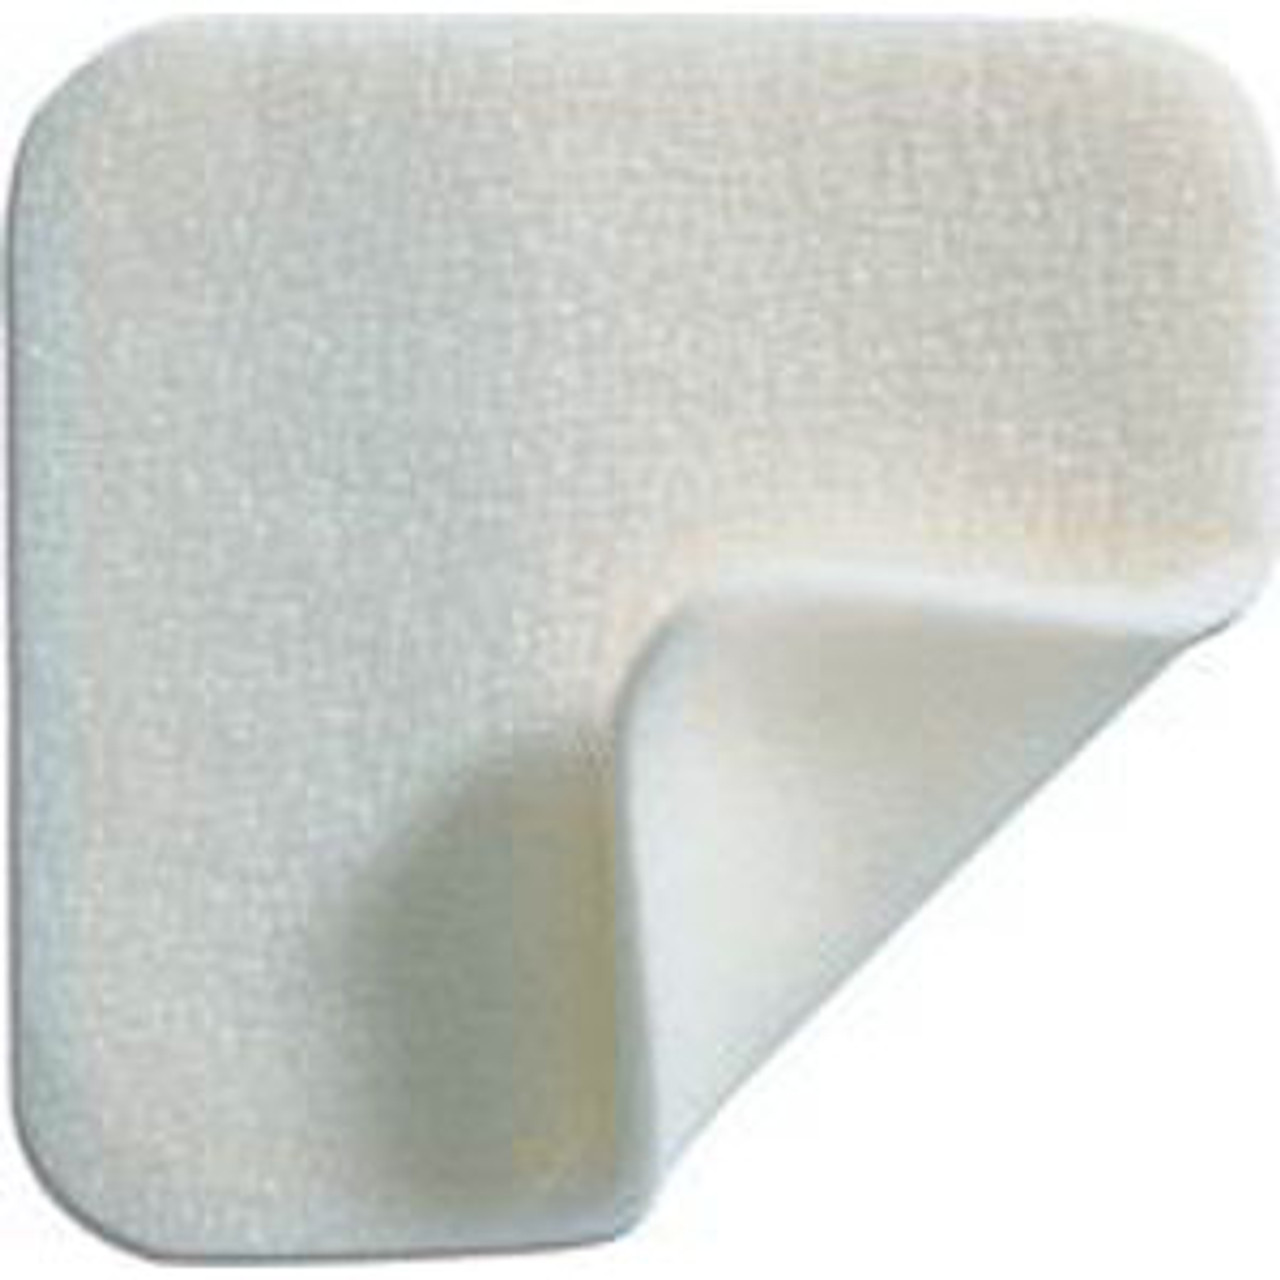 Mepilex - Soft and conformable foam dressing: 4˝ x 8˝ (10 x 20 cm), 5/box